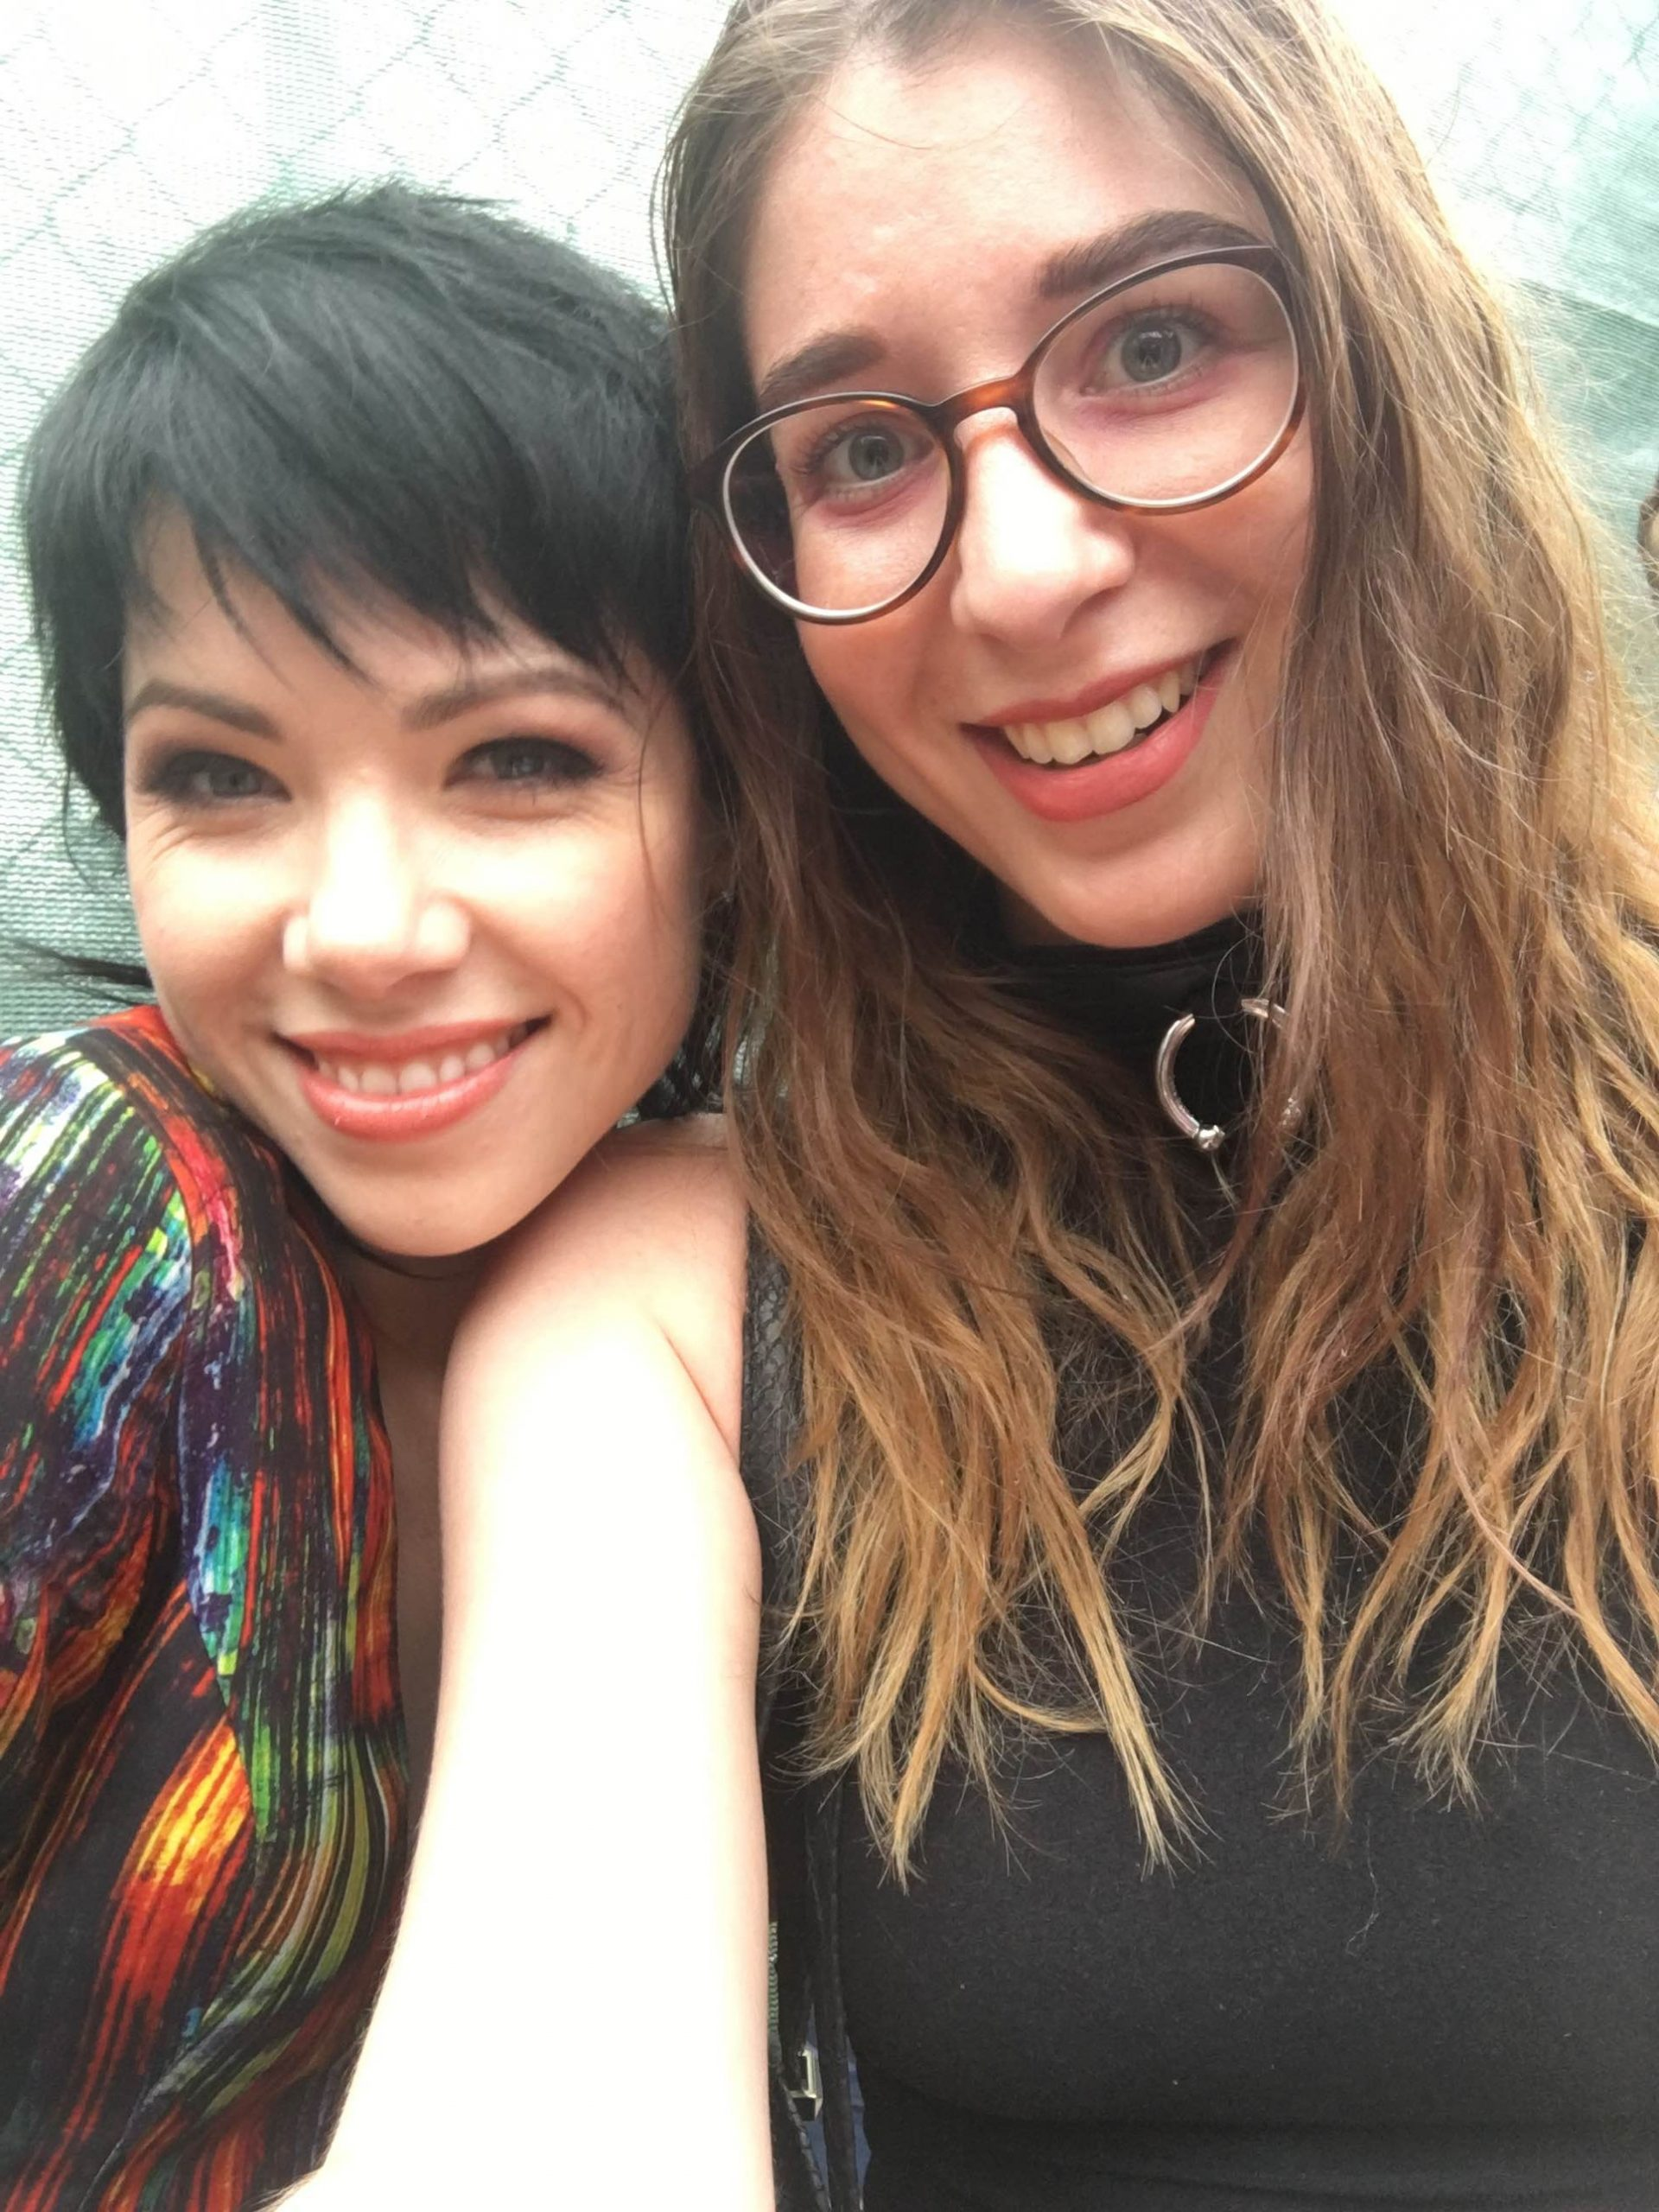 Carly Rae Jepsen poses for a selfie with <i>Reader</i> contributor Meagan Fredette.